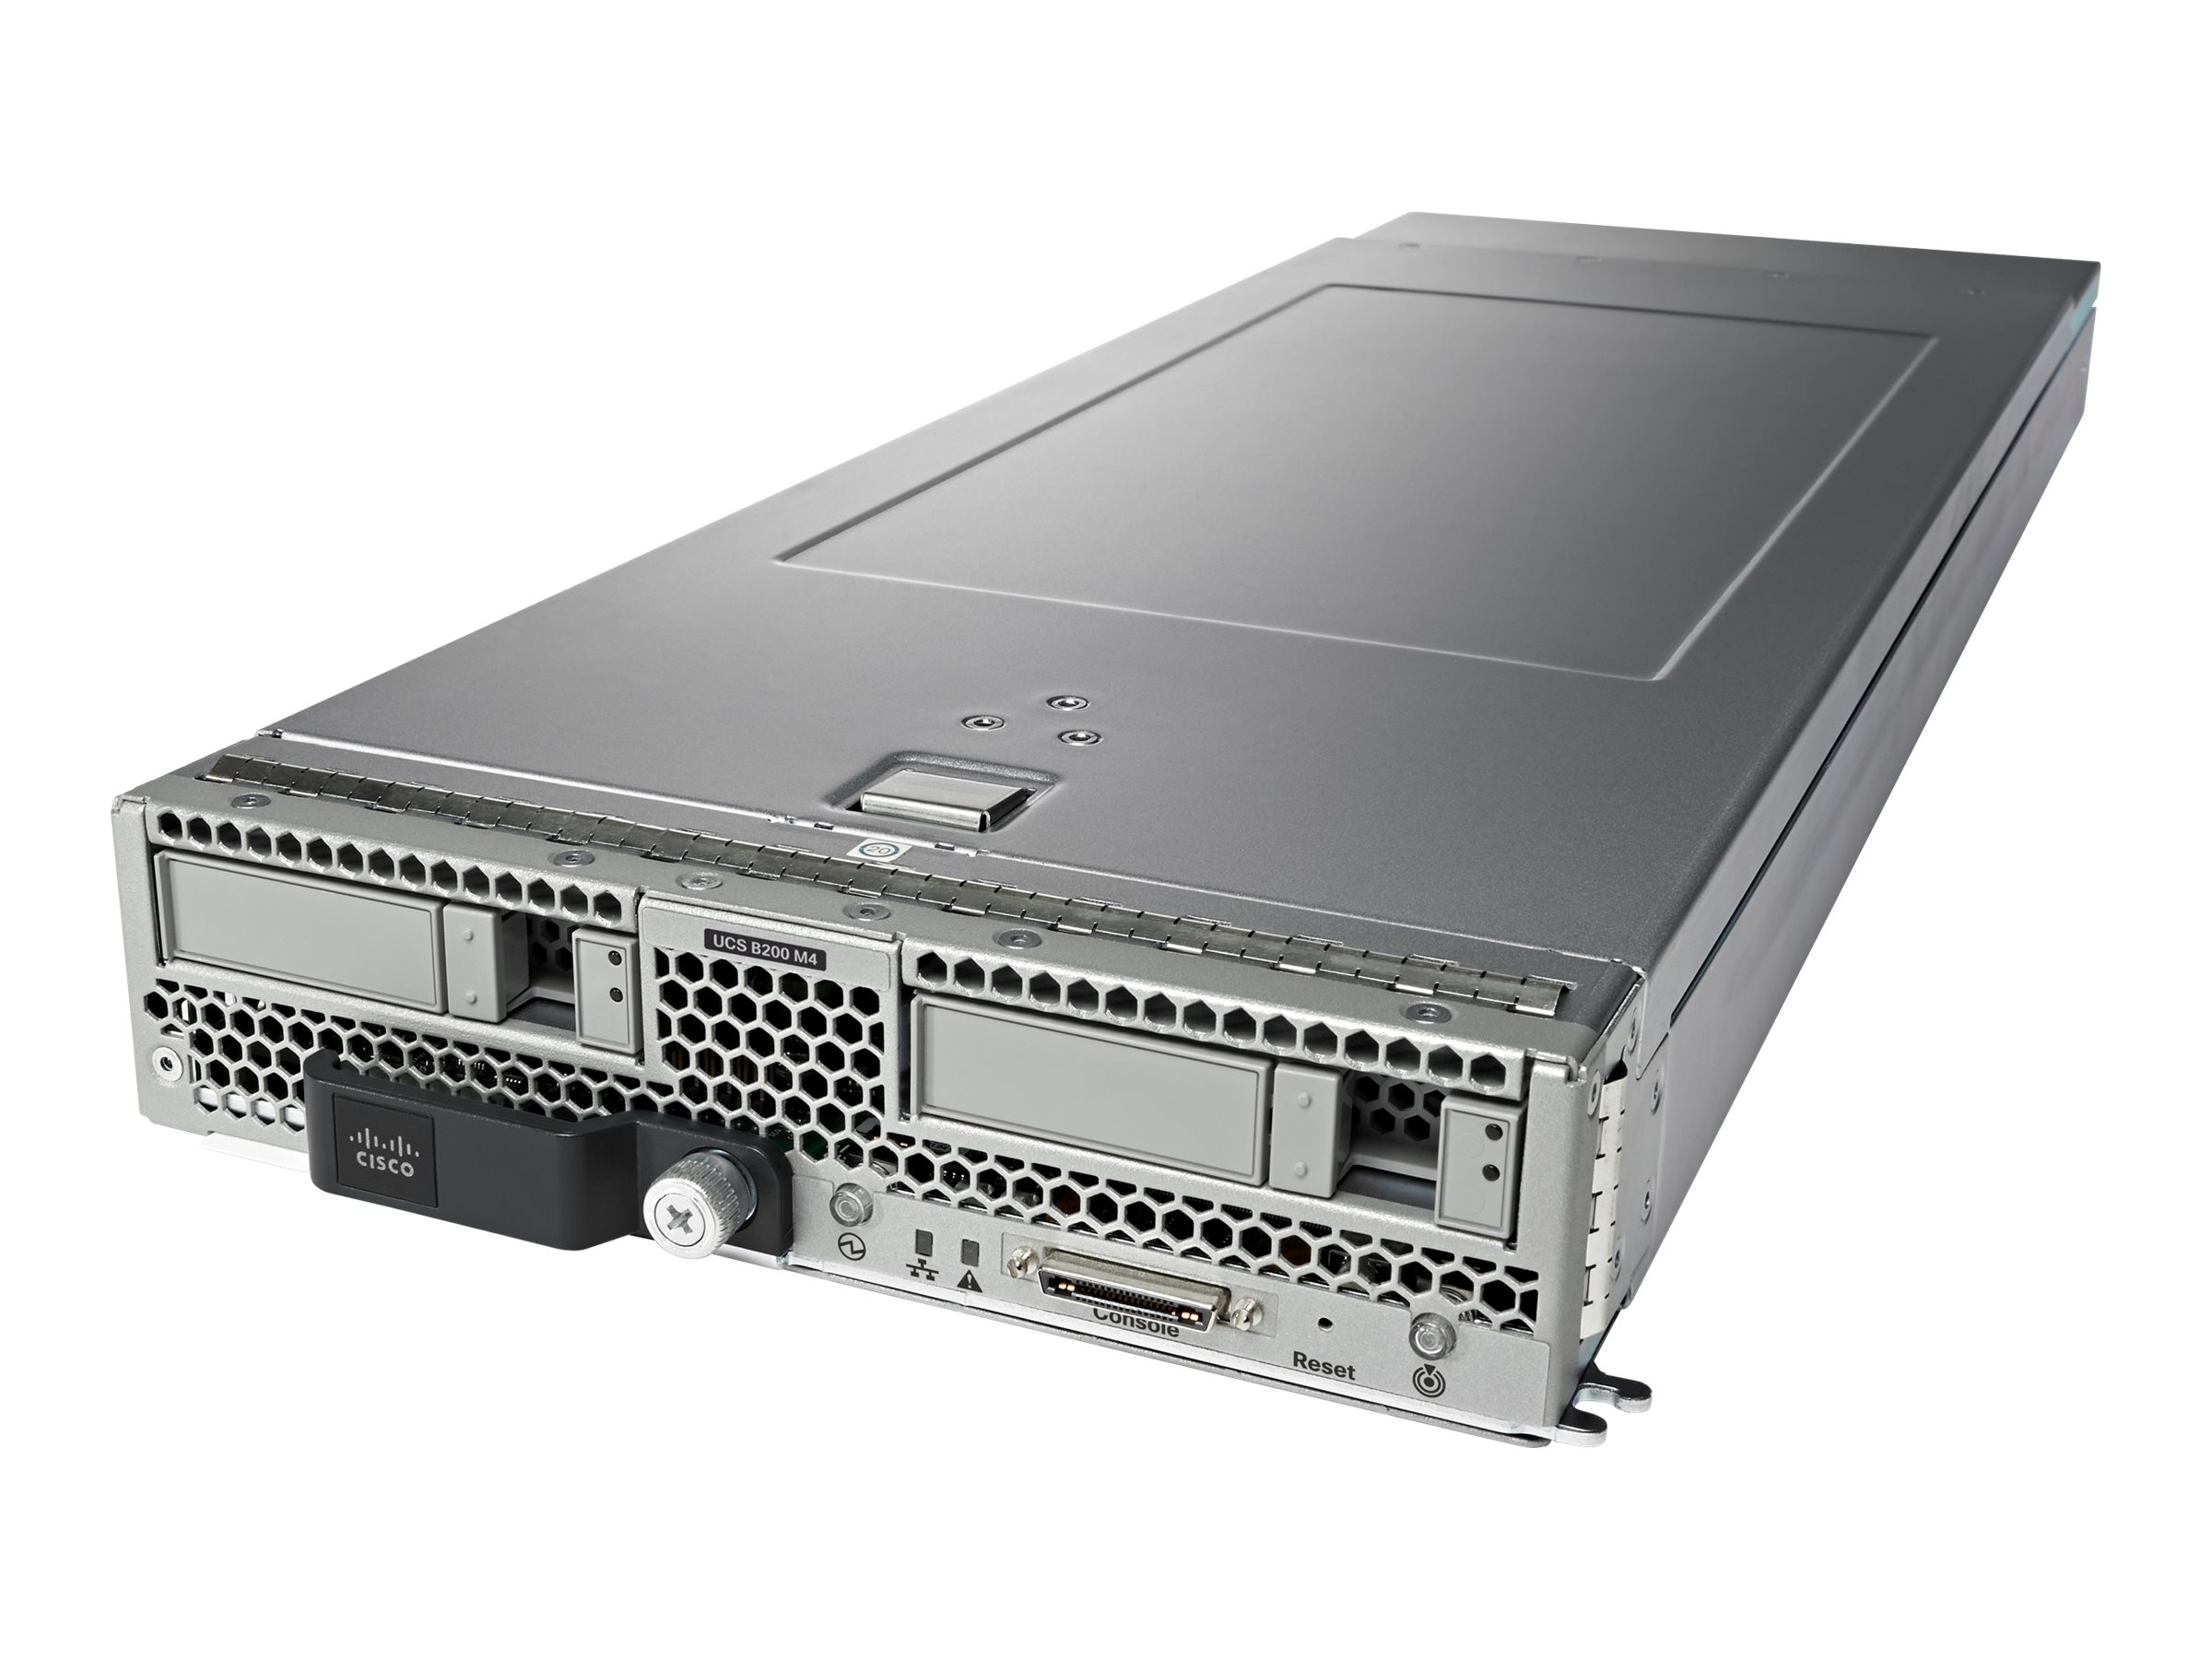 Cisco UCS-SP-B200M4-B-A4 Image 1